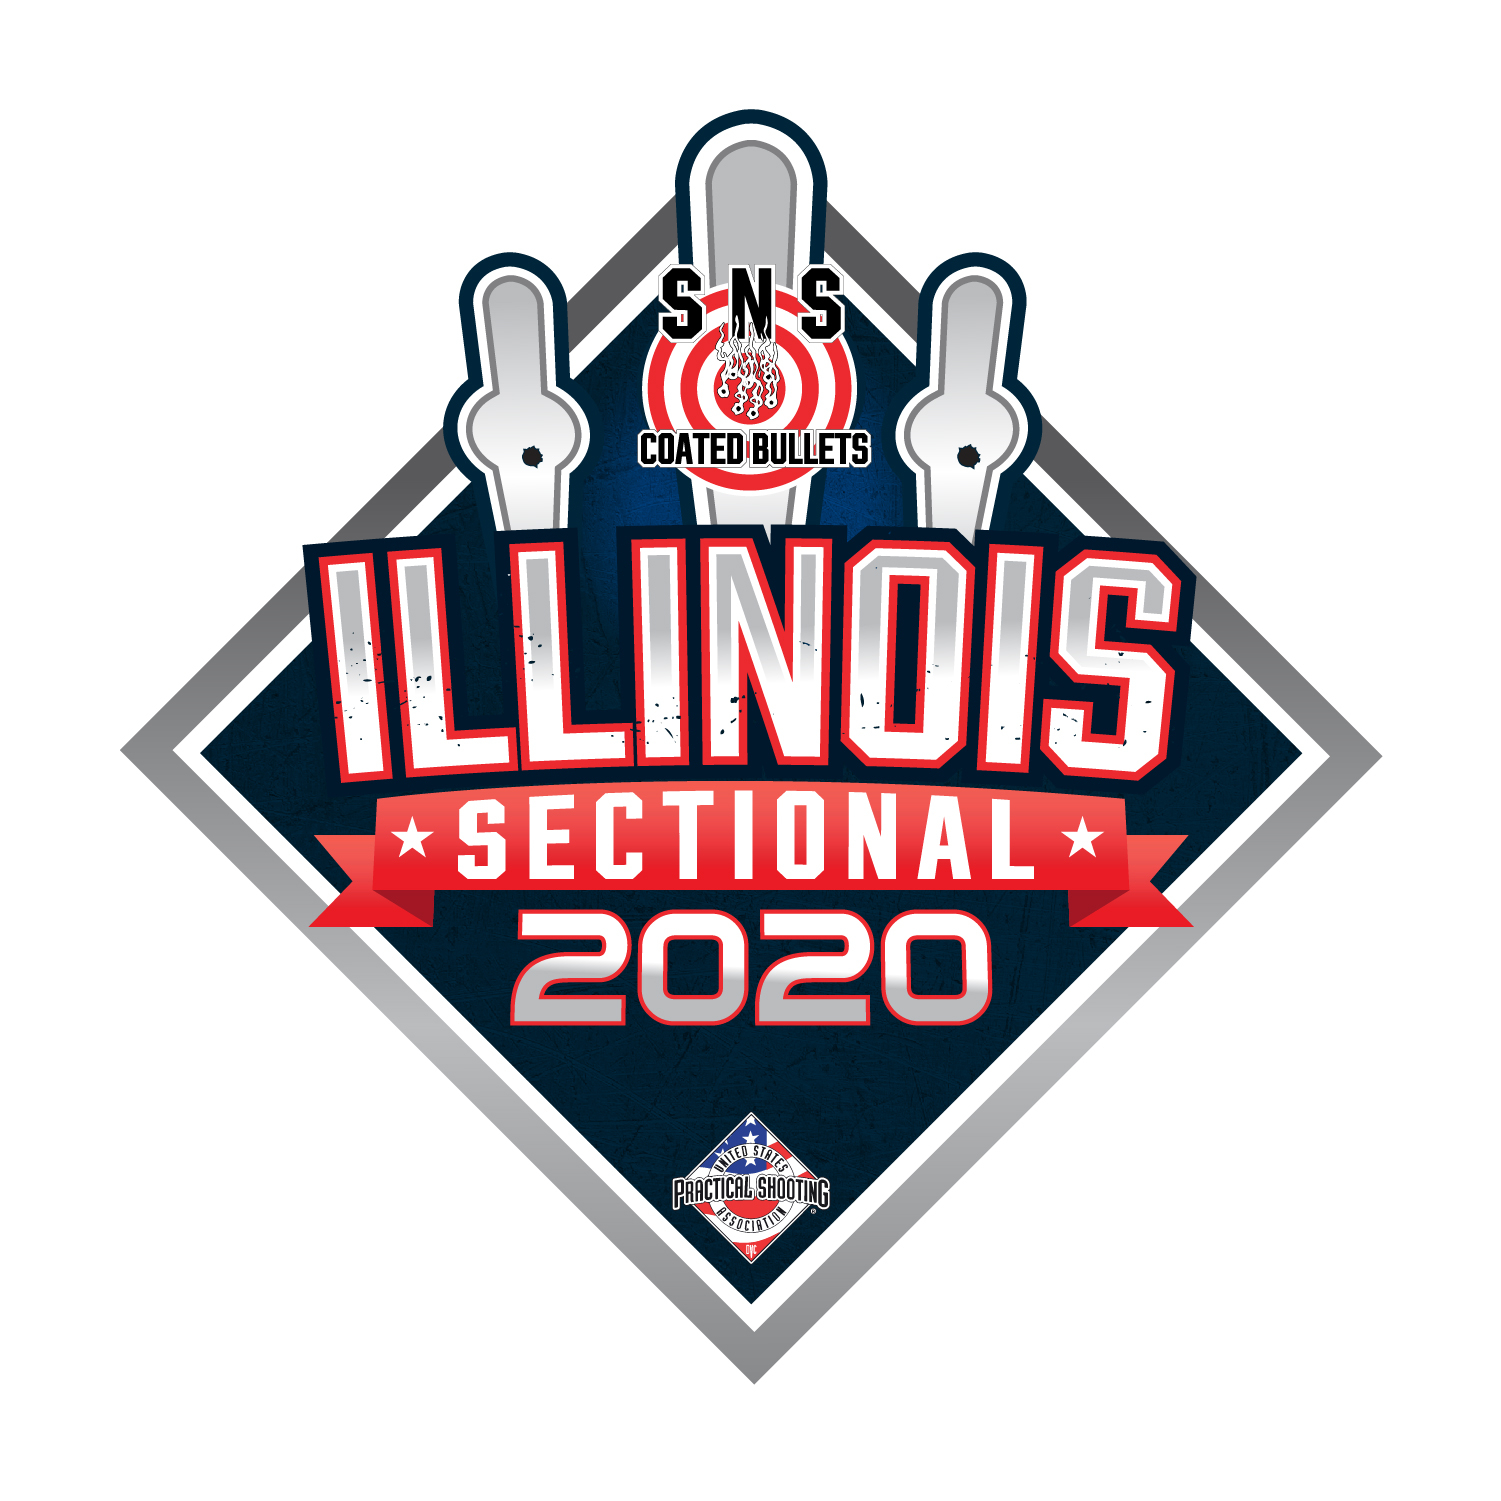 2020 Illinois Sectional